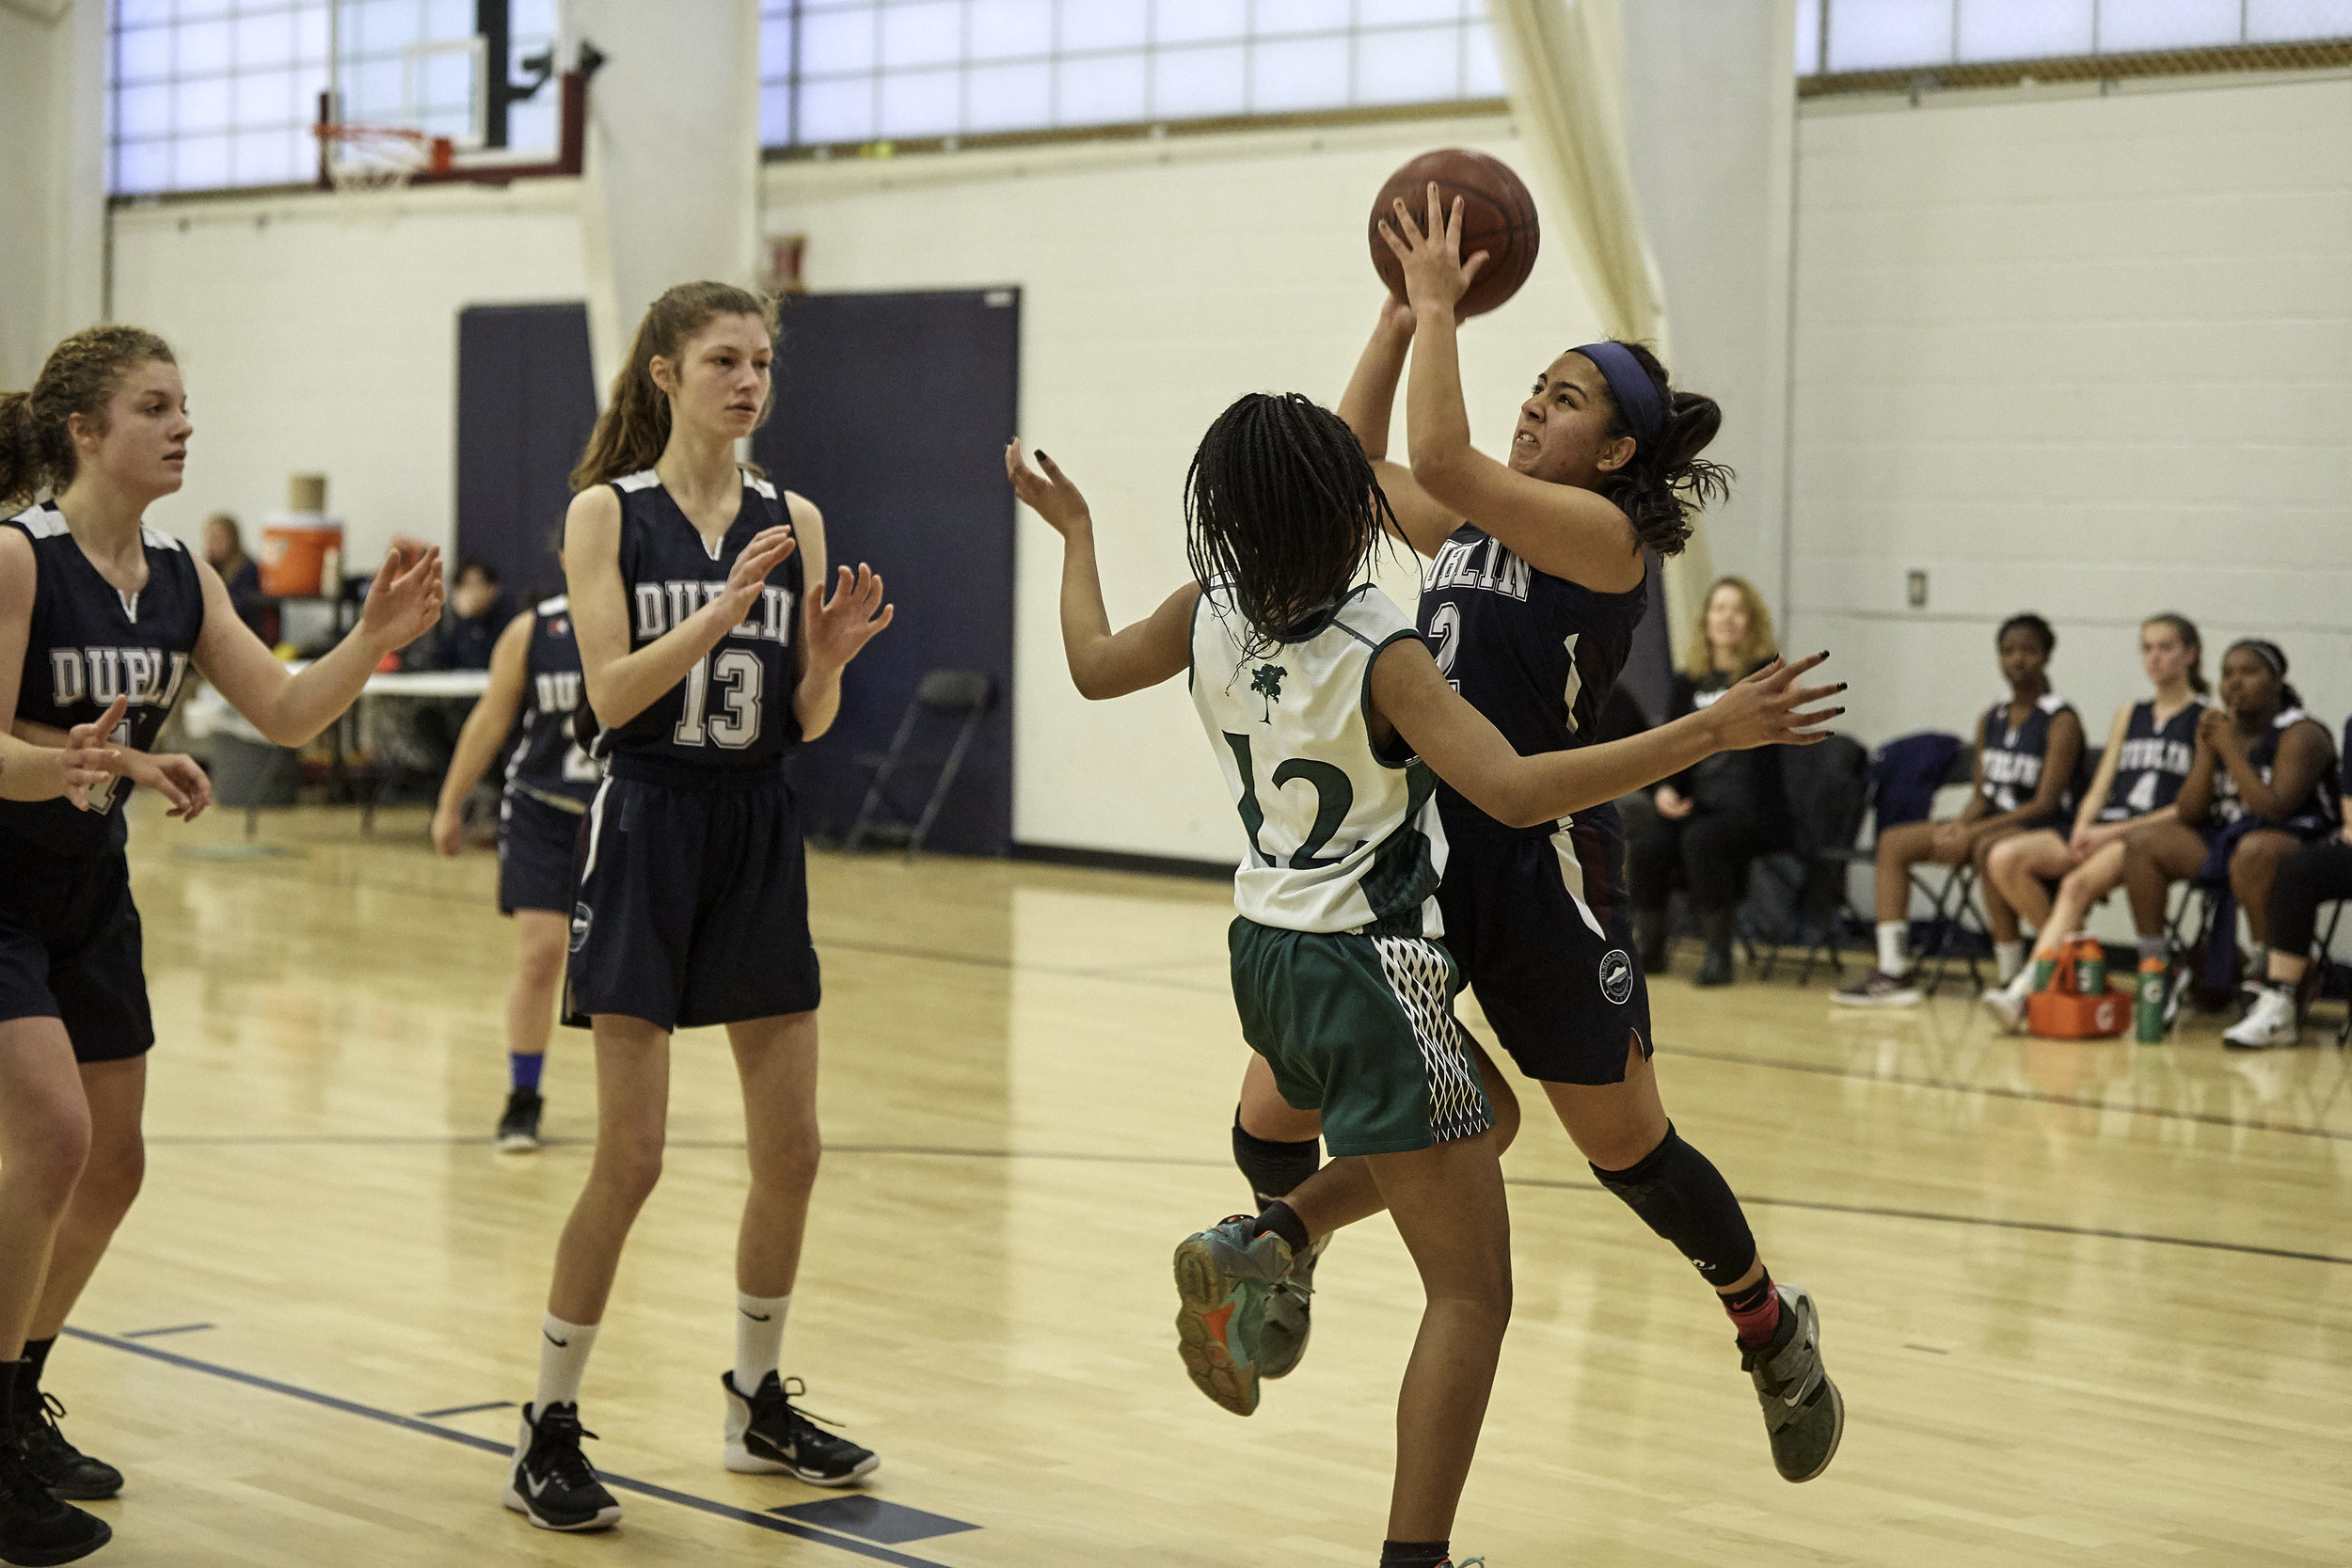 Basketball vs Putney School, February 9, 2019 - 167402.jpg